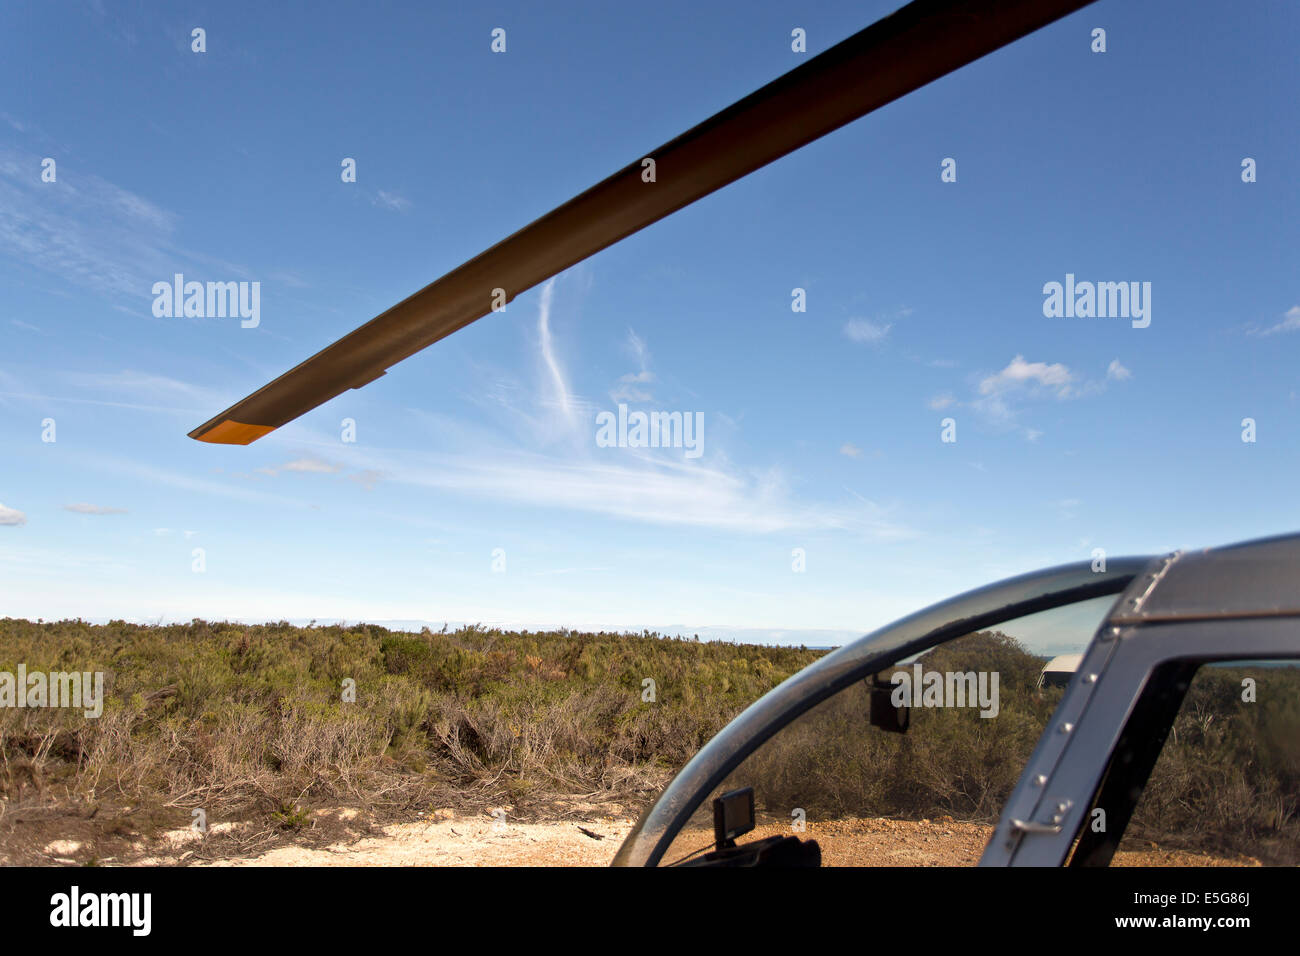 View of a helicopter blade and part of the cabin - Stock Image